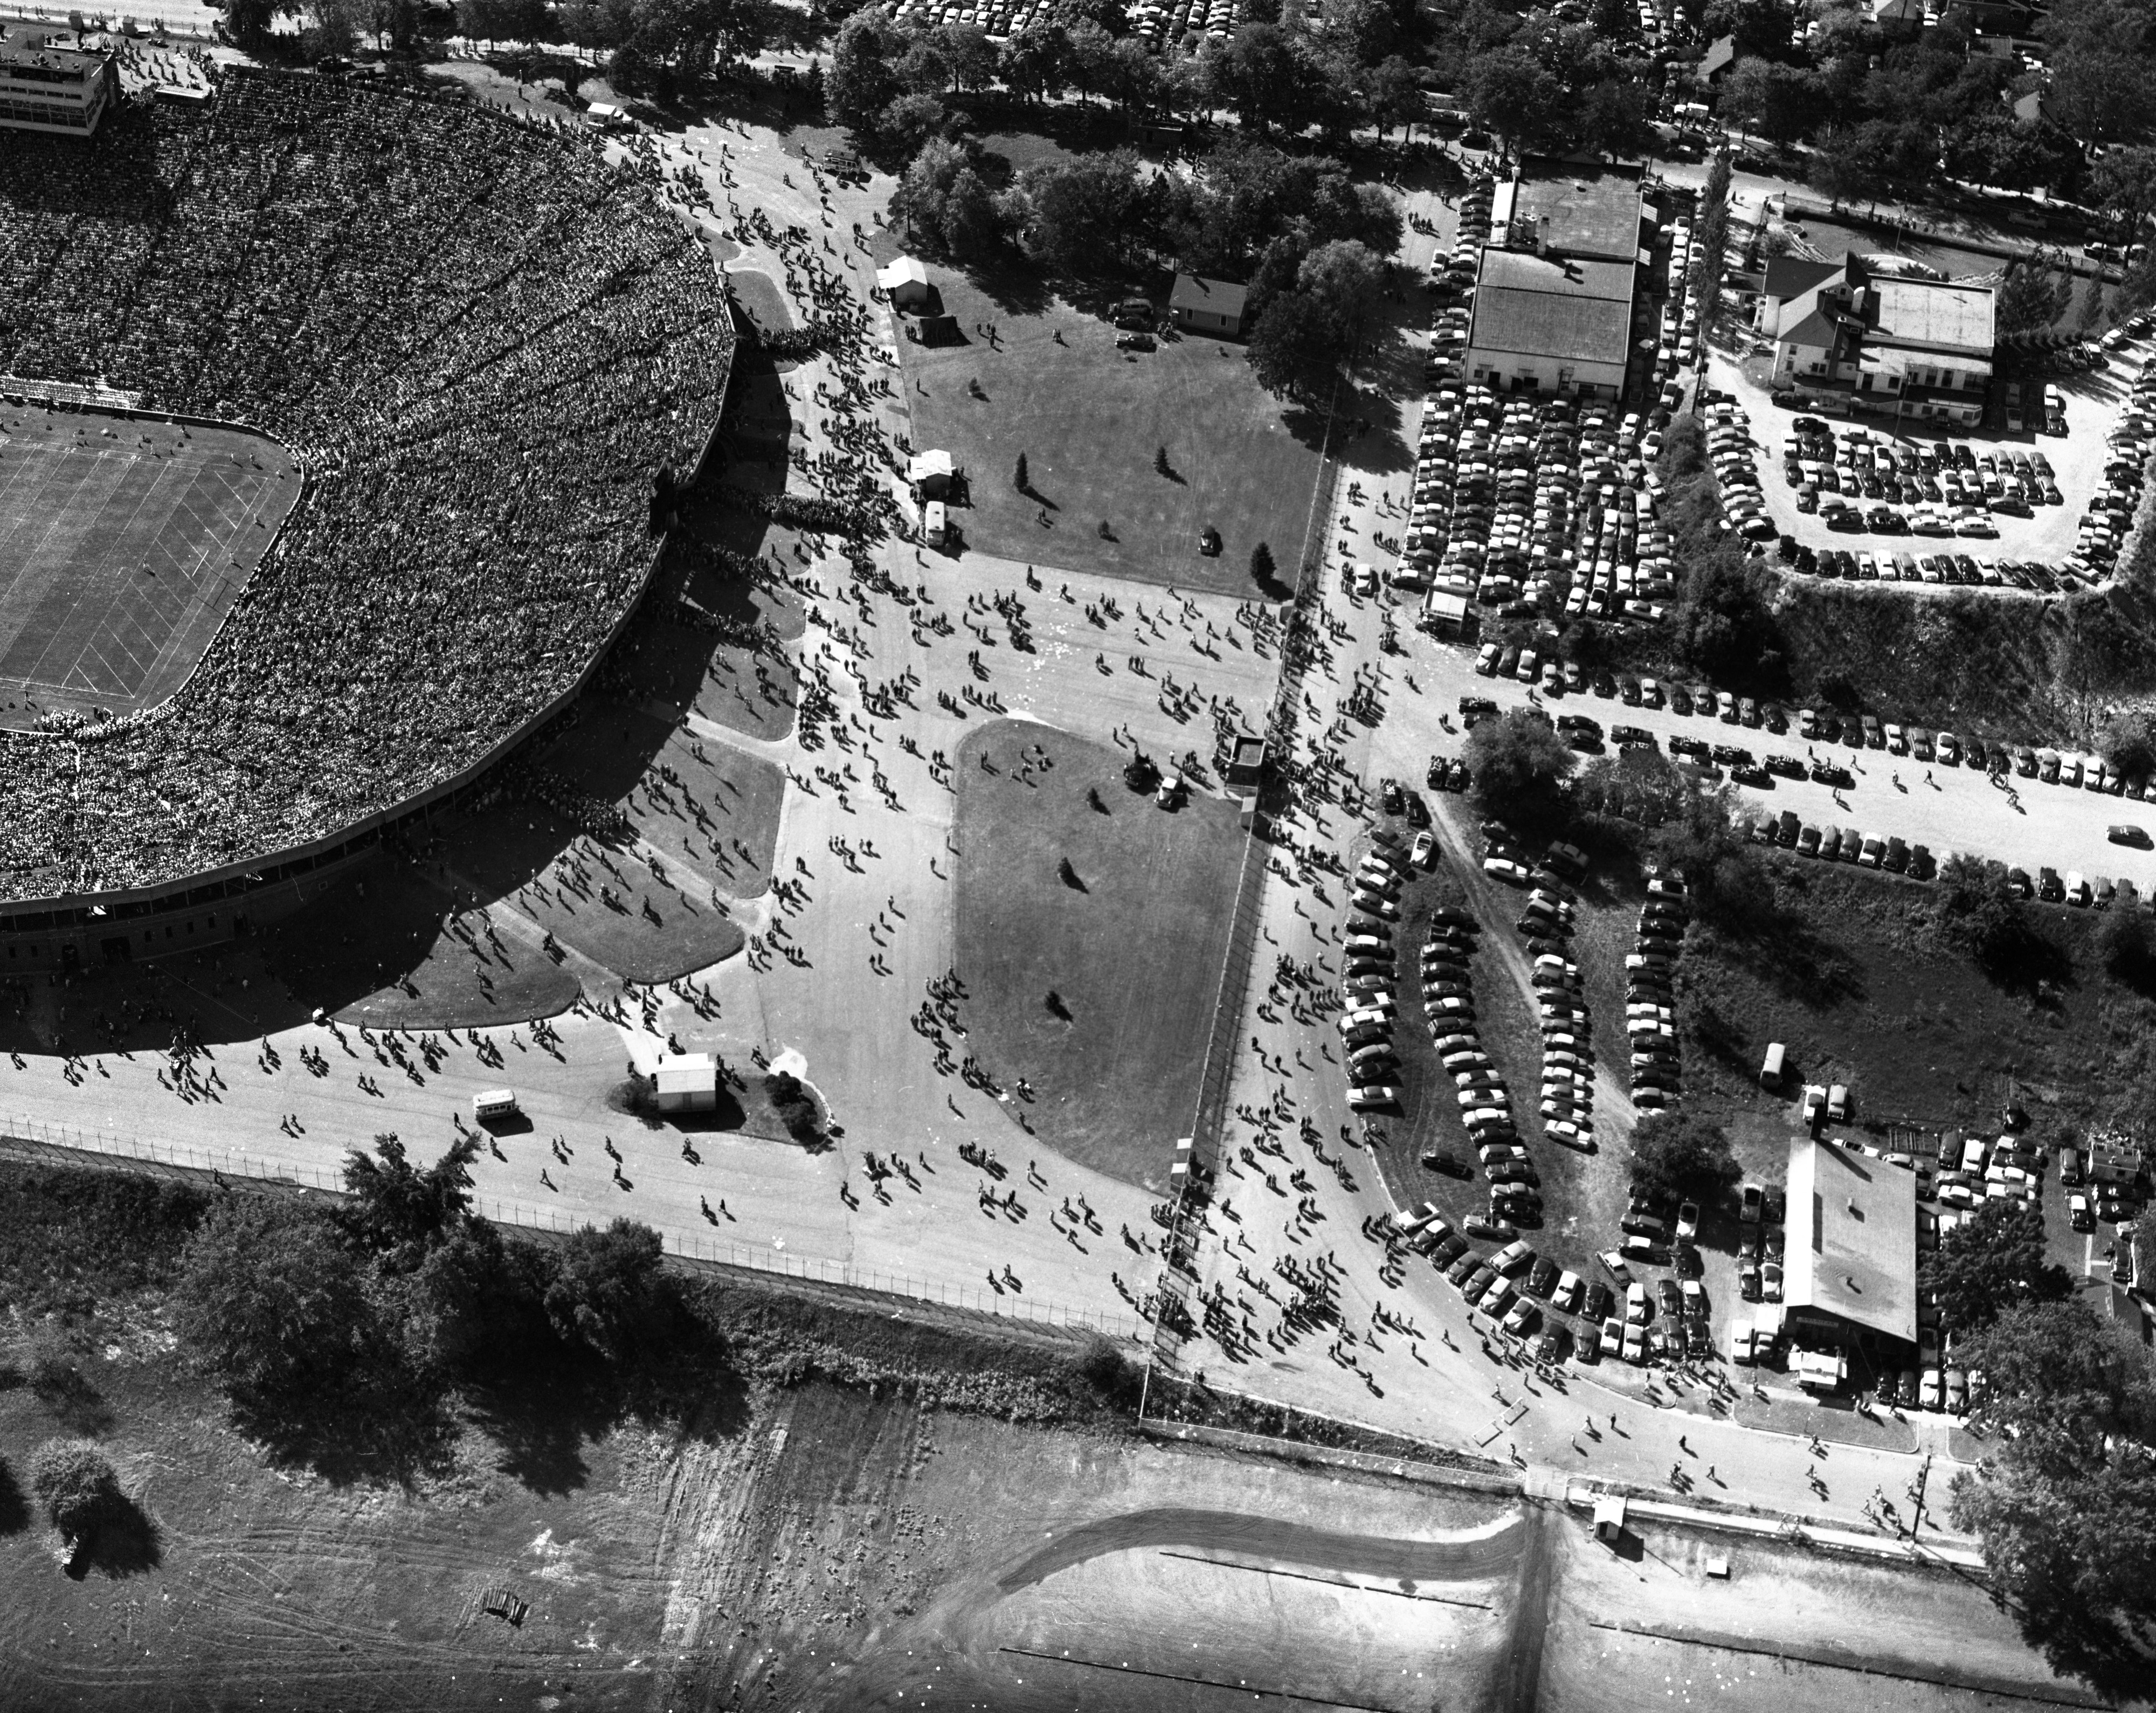 Aerial photo of University of Michigan vs. Michigan State football game, September 27, 1952 image